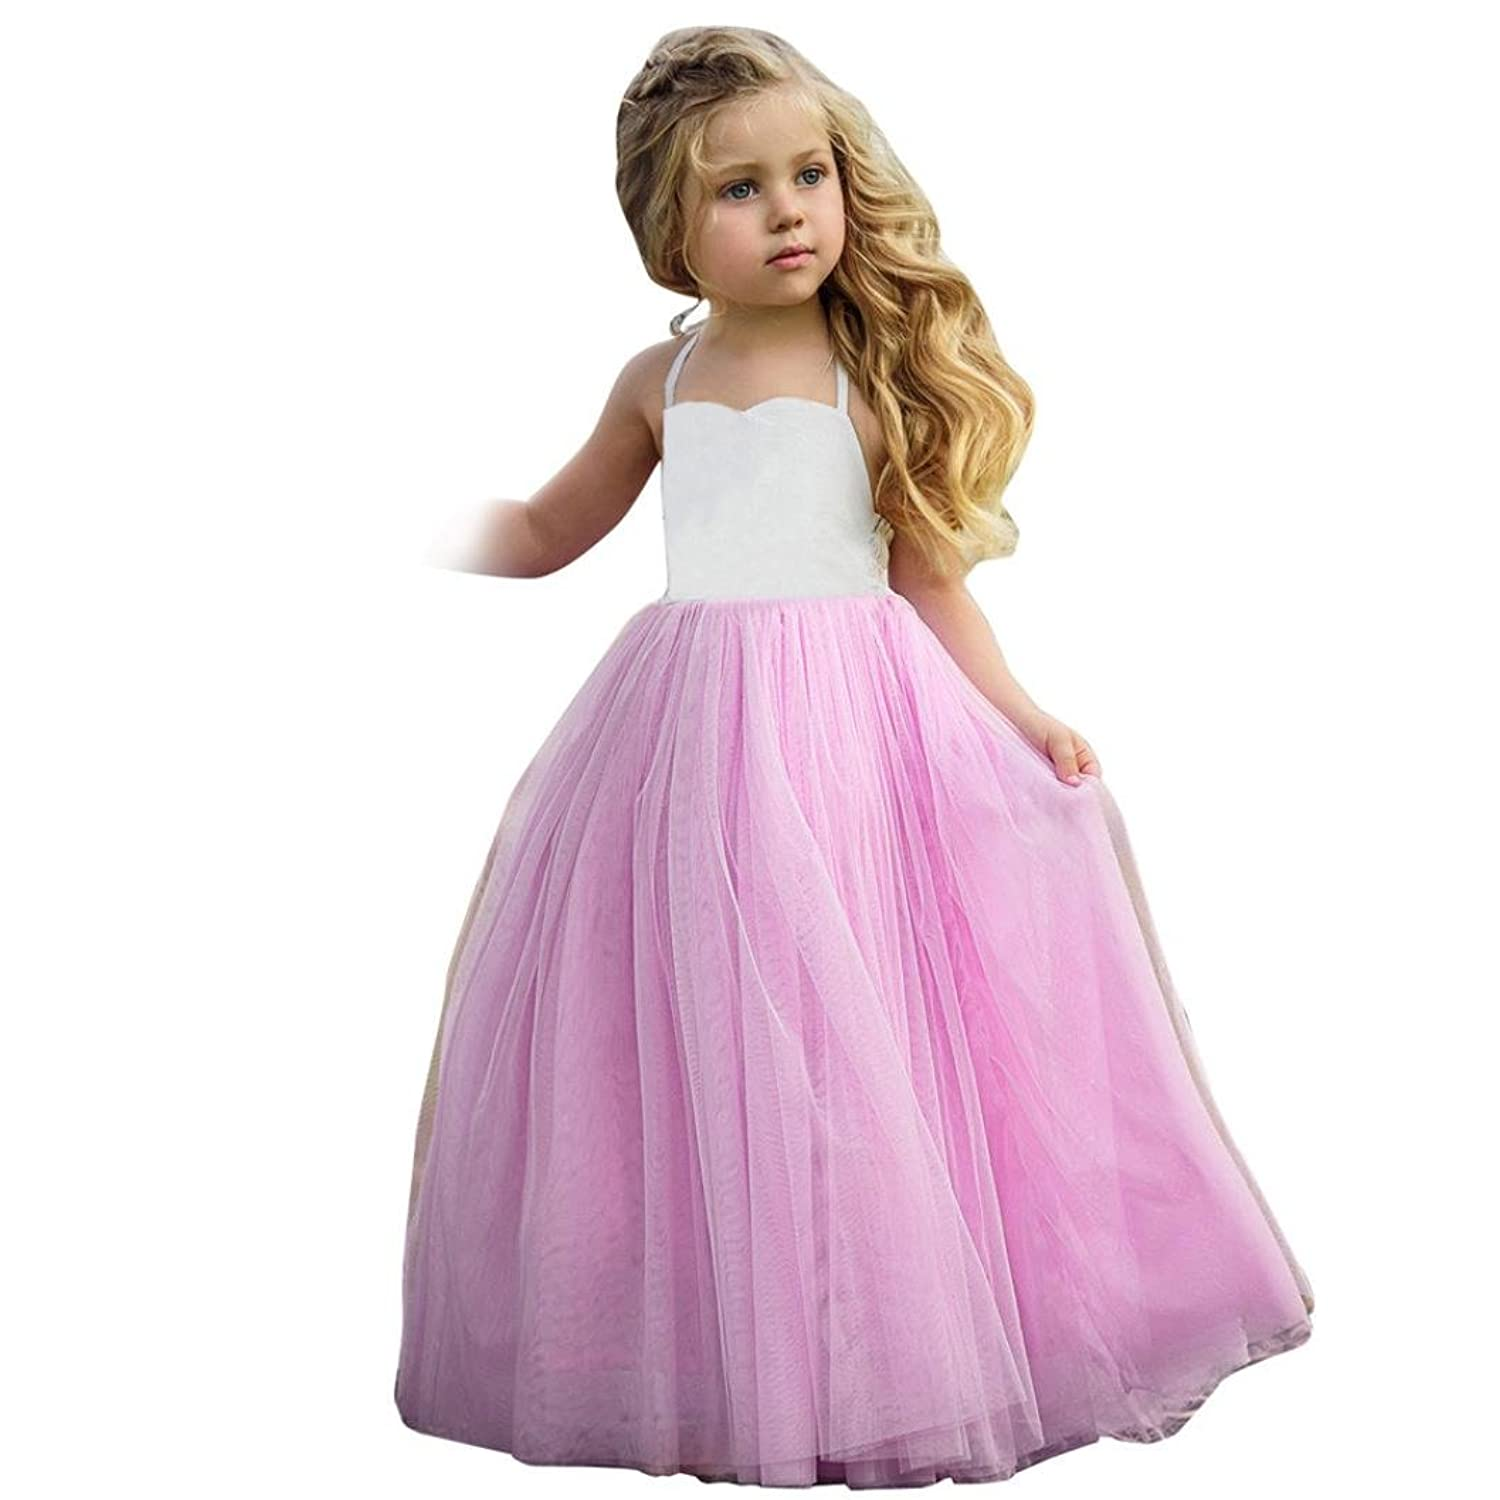 4a29d7670482 This cute and comfy clothes set is designed specially for your girls